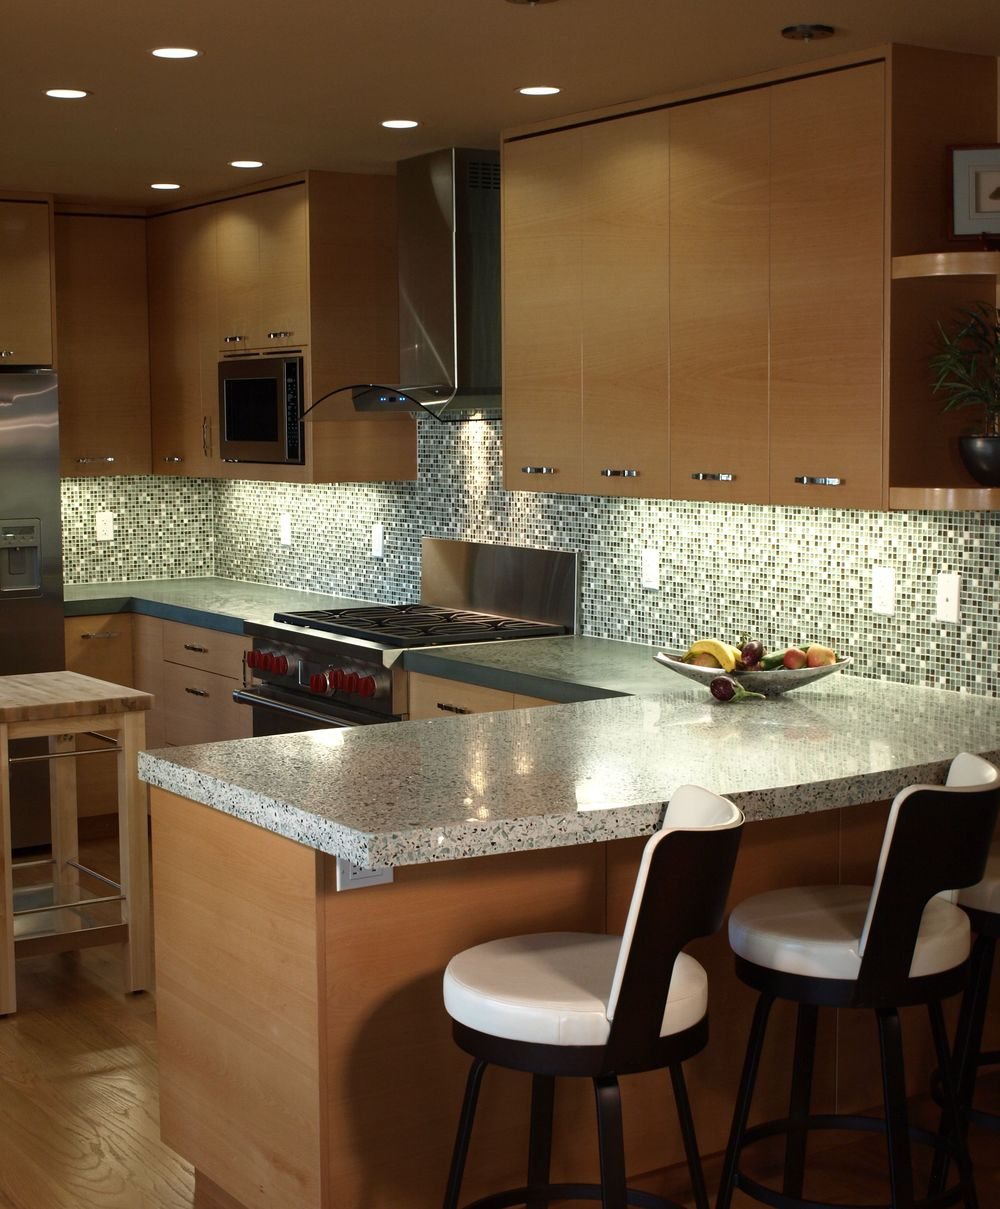 Kitchen Cabinets Oakland Ca: Shades, Window Treatments, Design Services